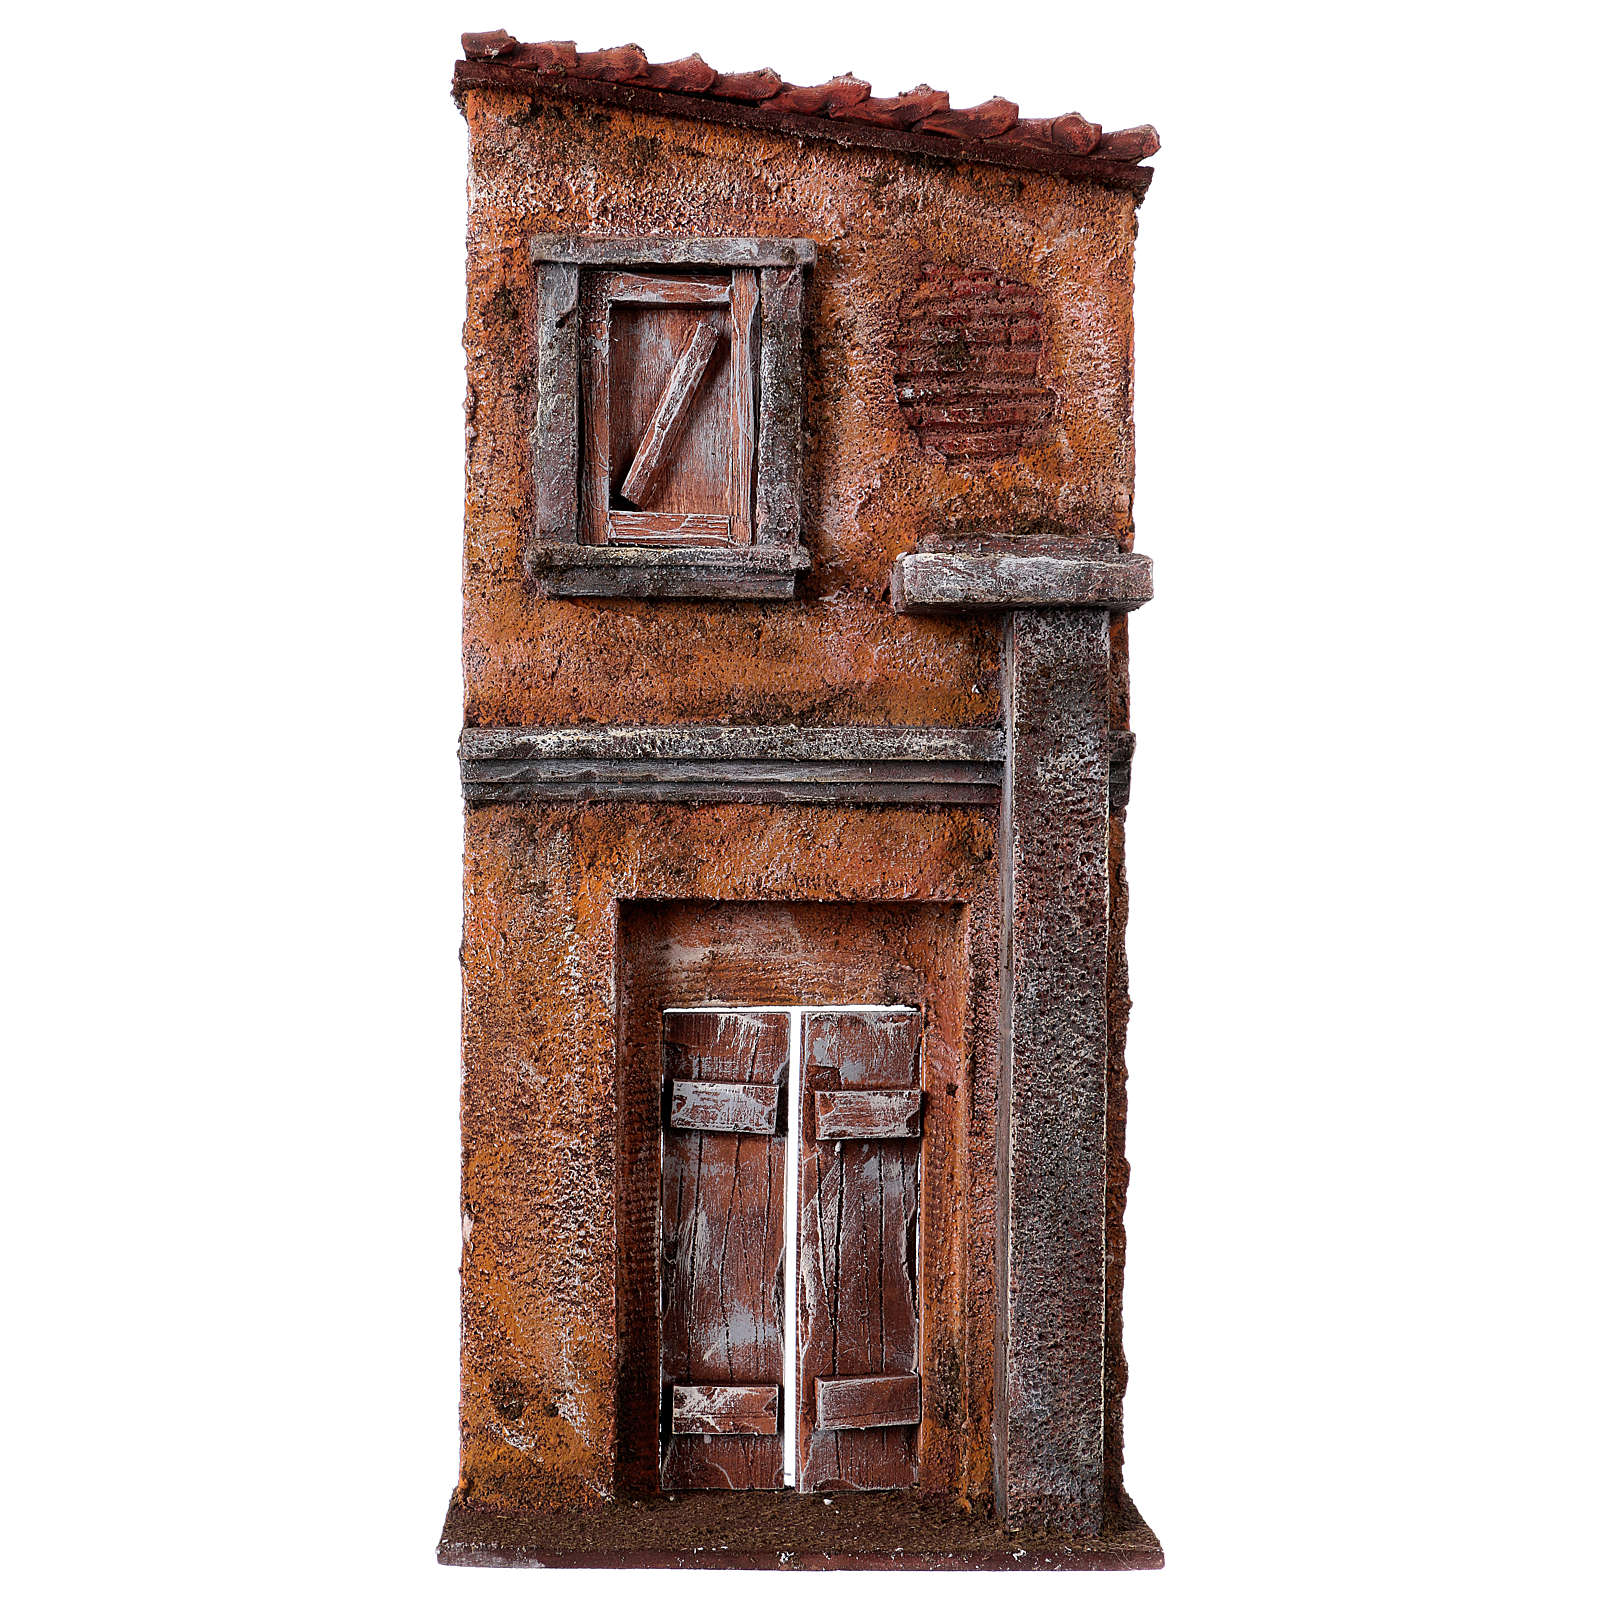 Nativity scene setting, house front with door and window 32x15x5 cm for 9 cm Nativity scene 4